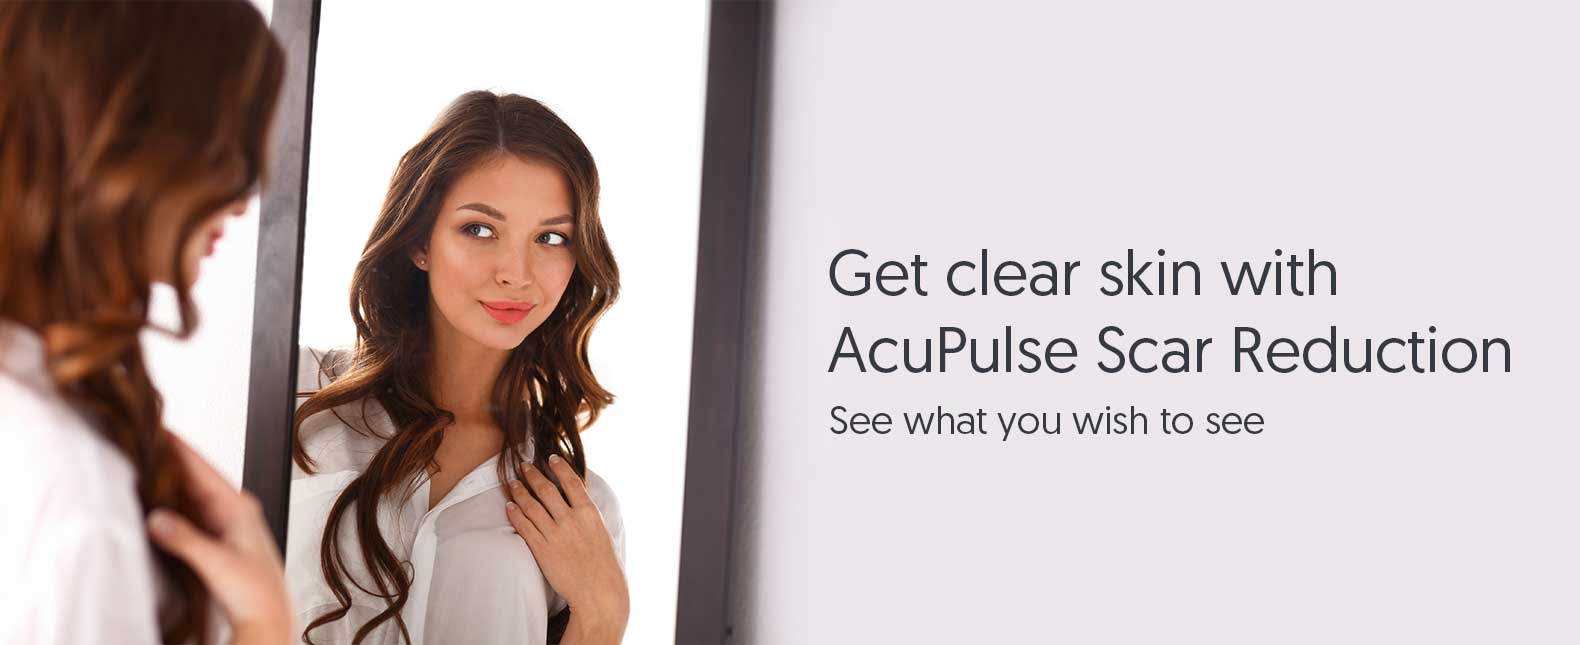 Get Clear Skin with AcuPulse Scar Reduction